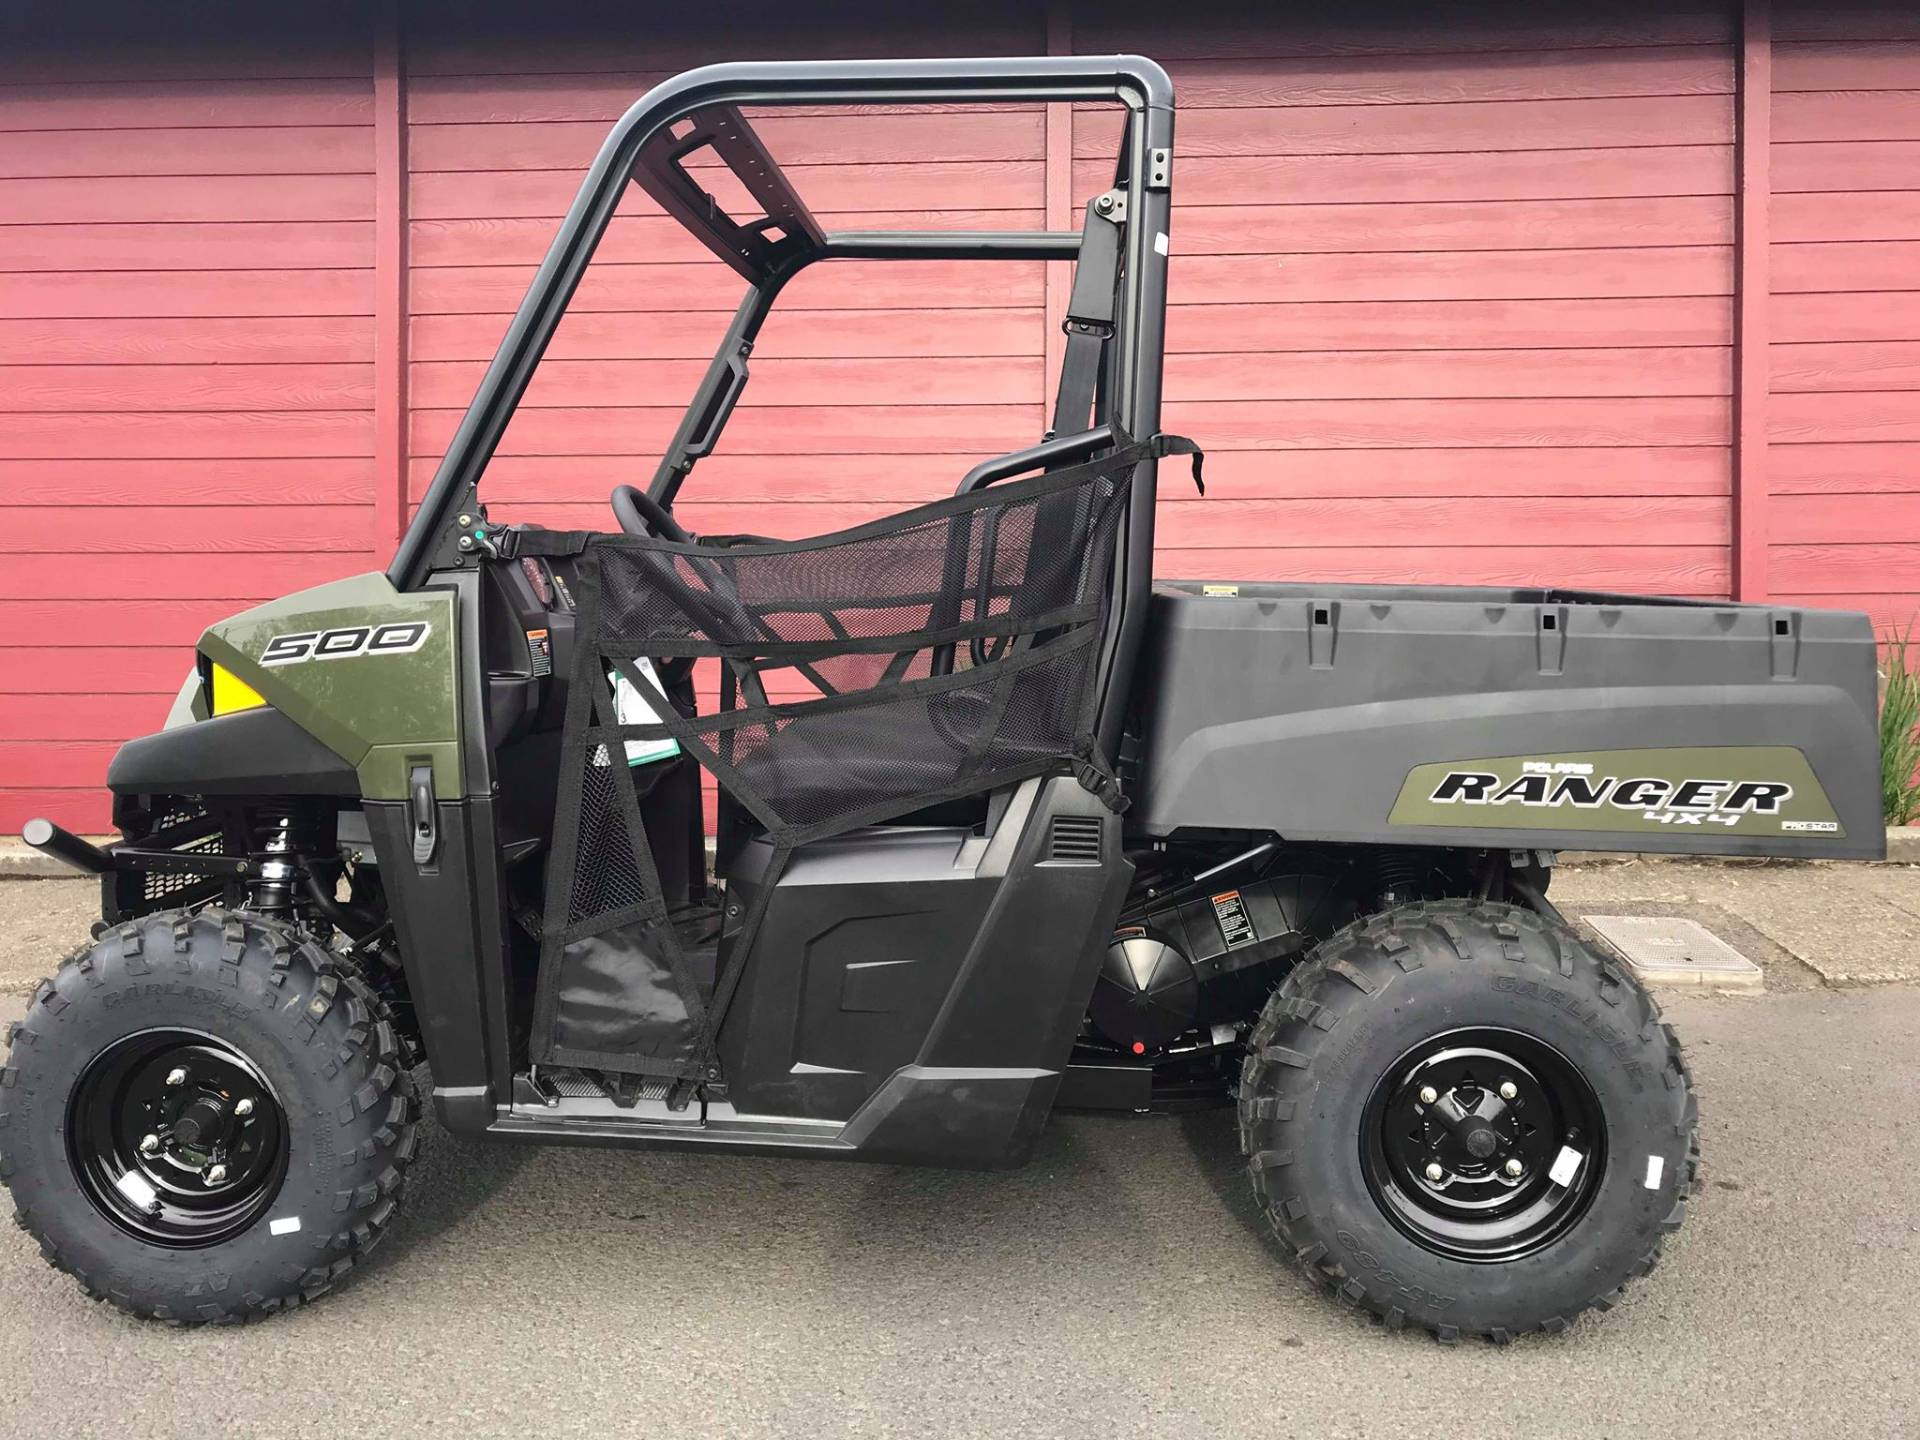 2018 Polaris Ranger 500 for sale 157533